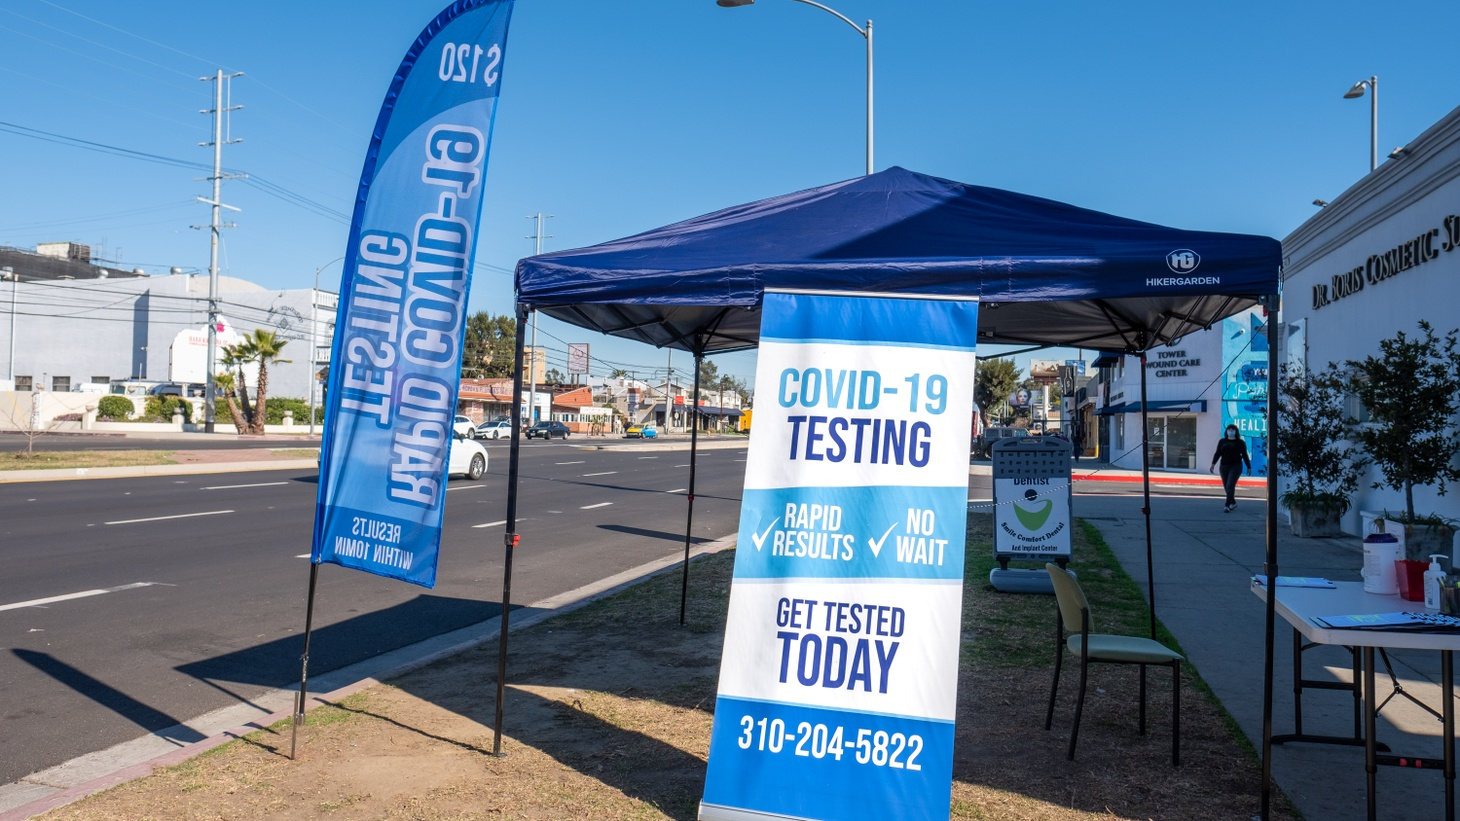 A new coronavirus testing site advertises rapid results and no wait, Culver City, California. January 21, 2021.